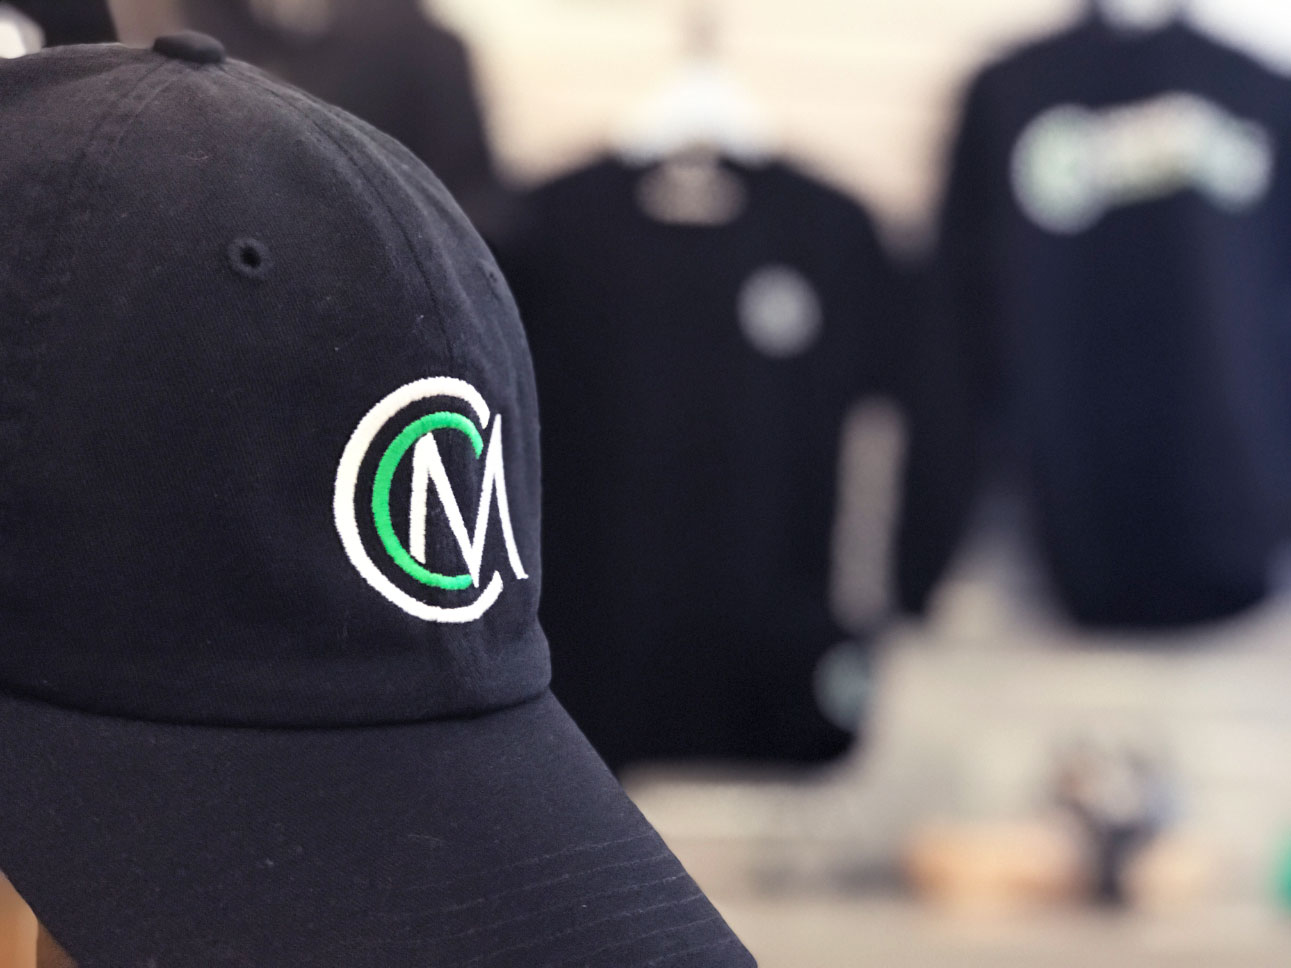 ccm-hat-shirts